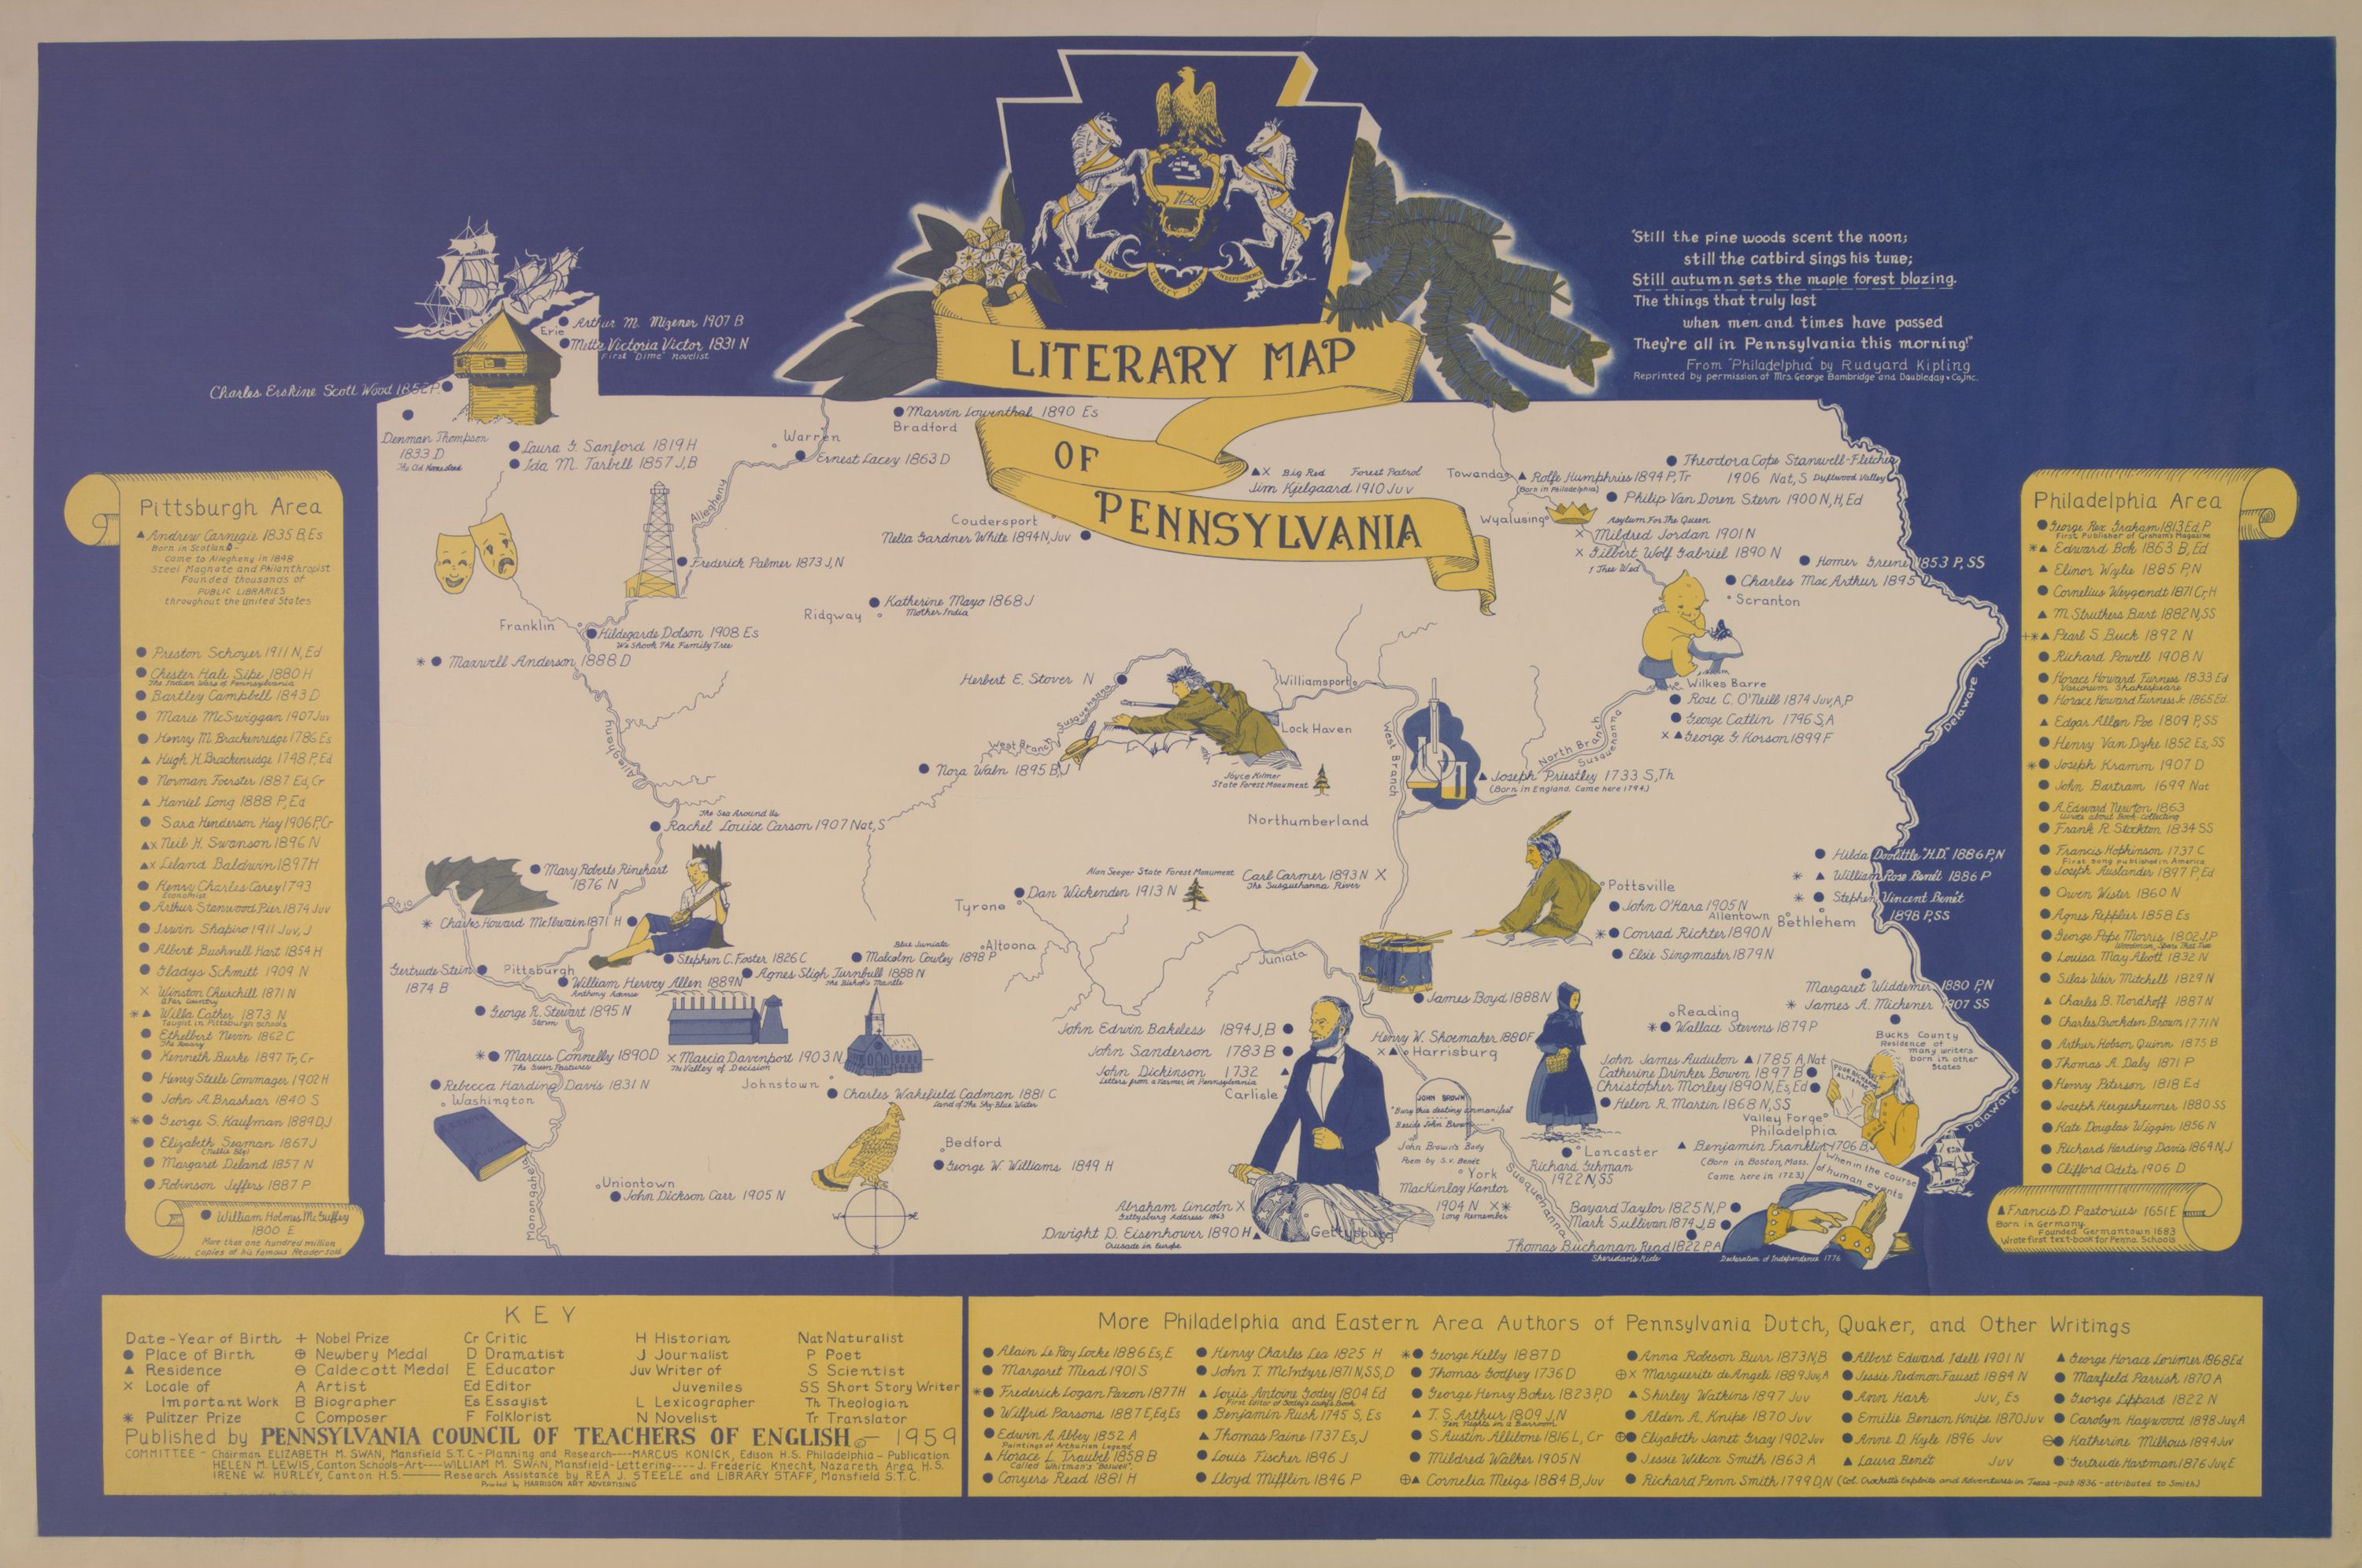 Literary Map of PA from 1959